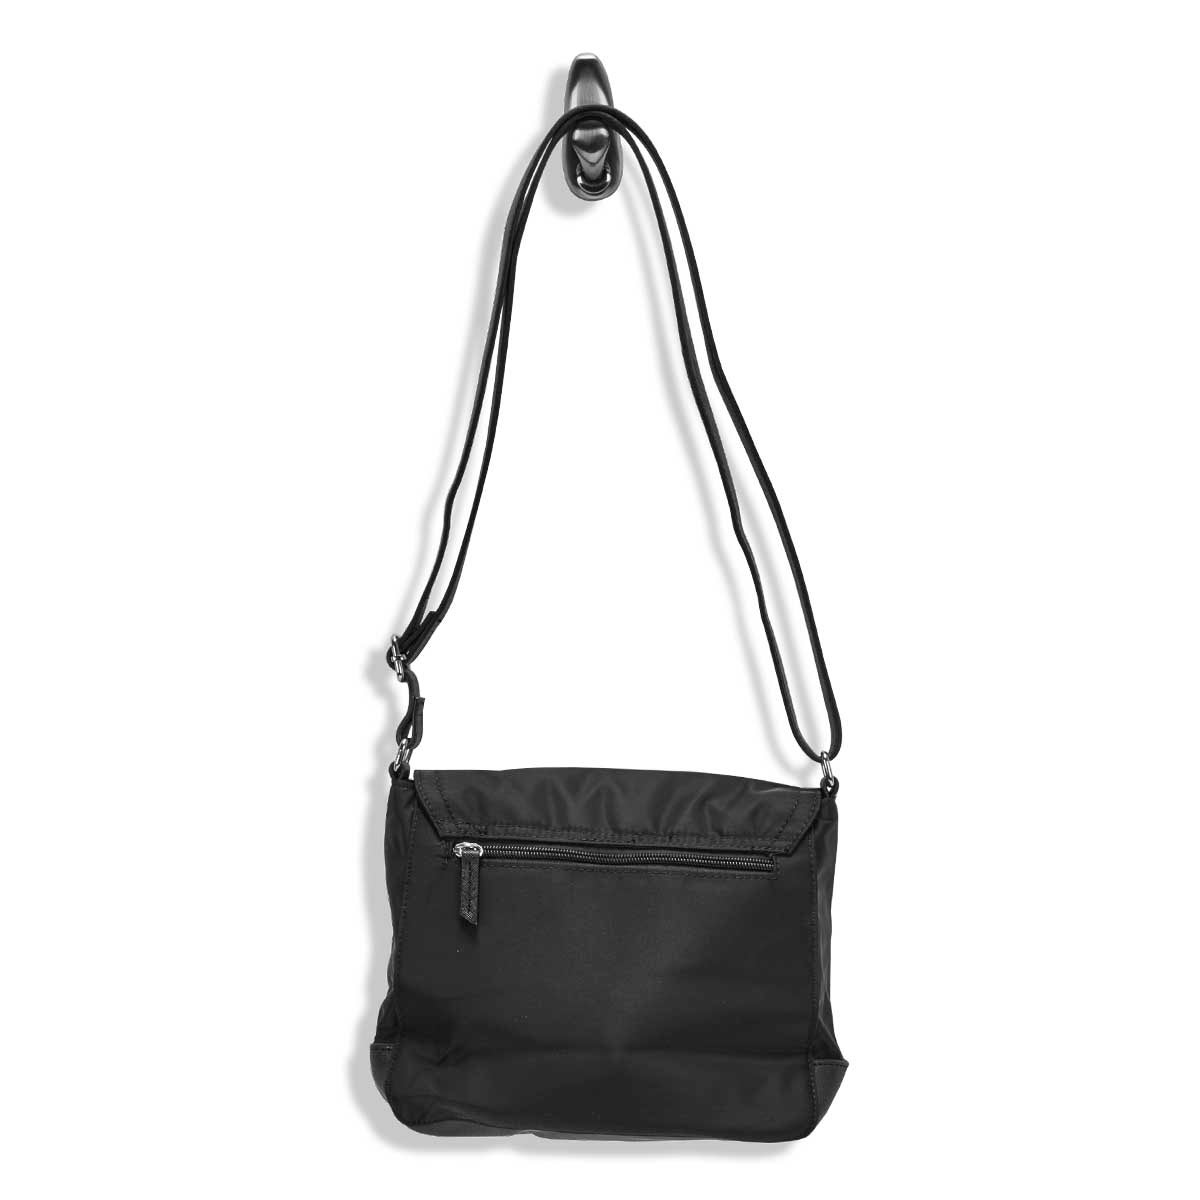 Lds Roots73 blk zip flap over crossbody